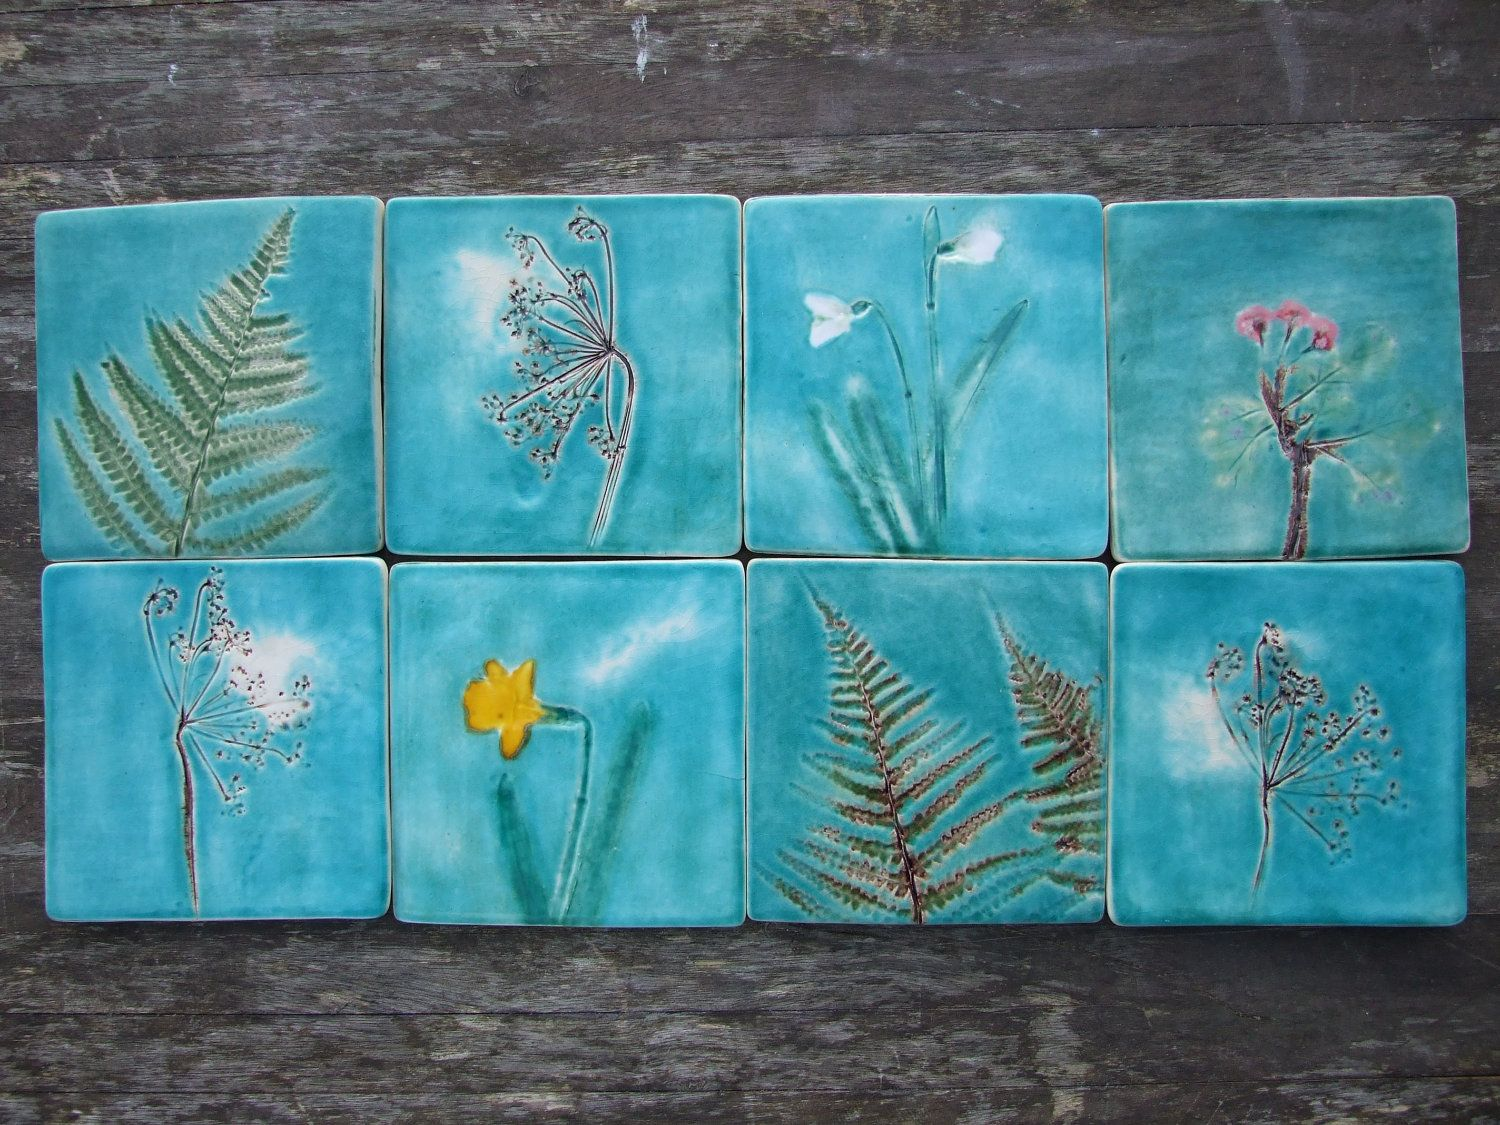 Snowdrop ceramic tile picture turquoise sky rustic wood frame 10 off snowdrop ceramic tile picture turquoise sky rustic wood frame vintage hungarian linen winter time dailygadgetfo Choice Image